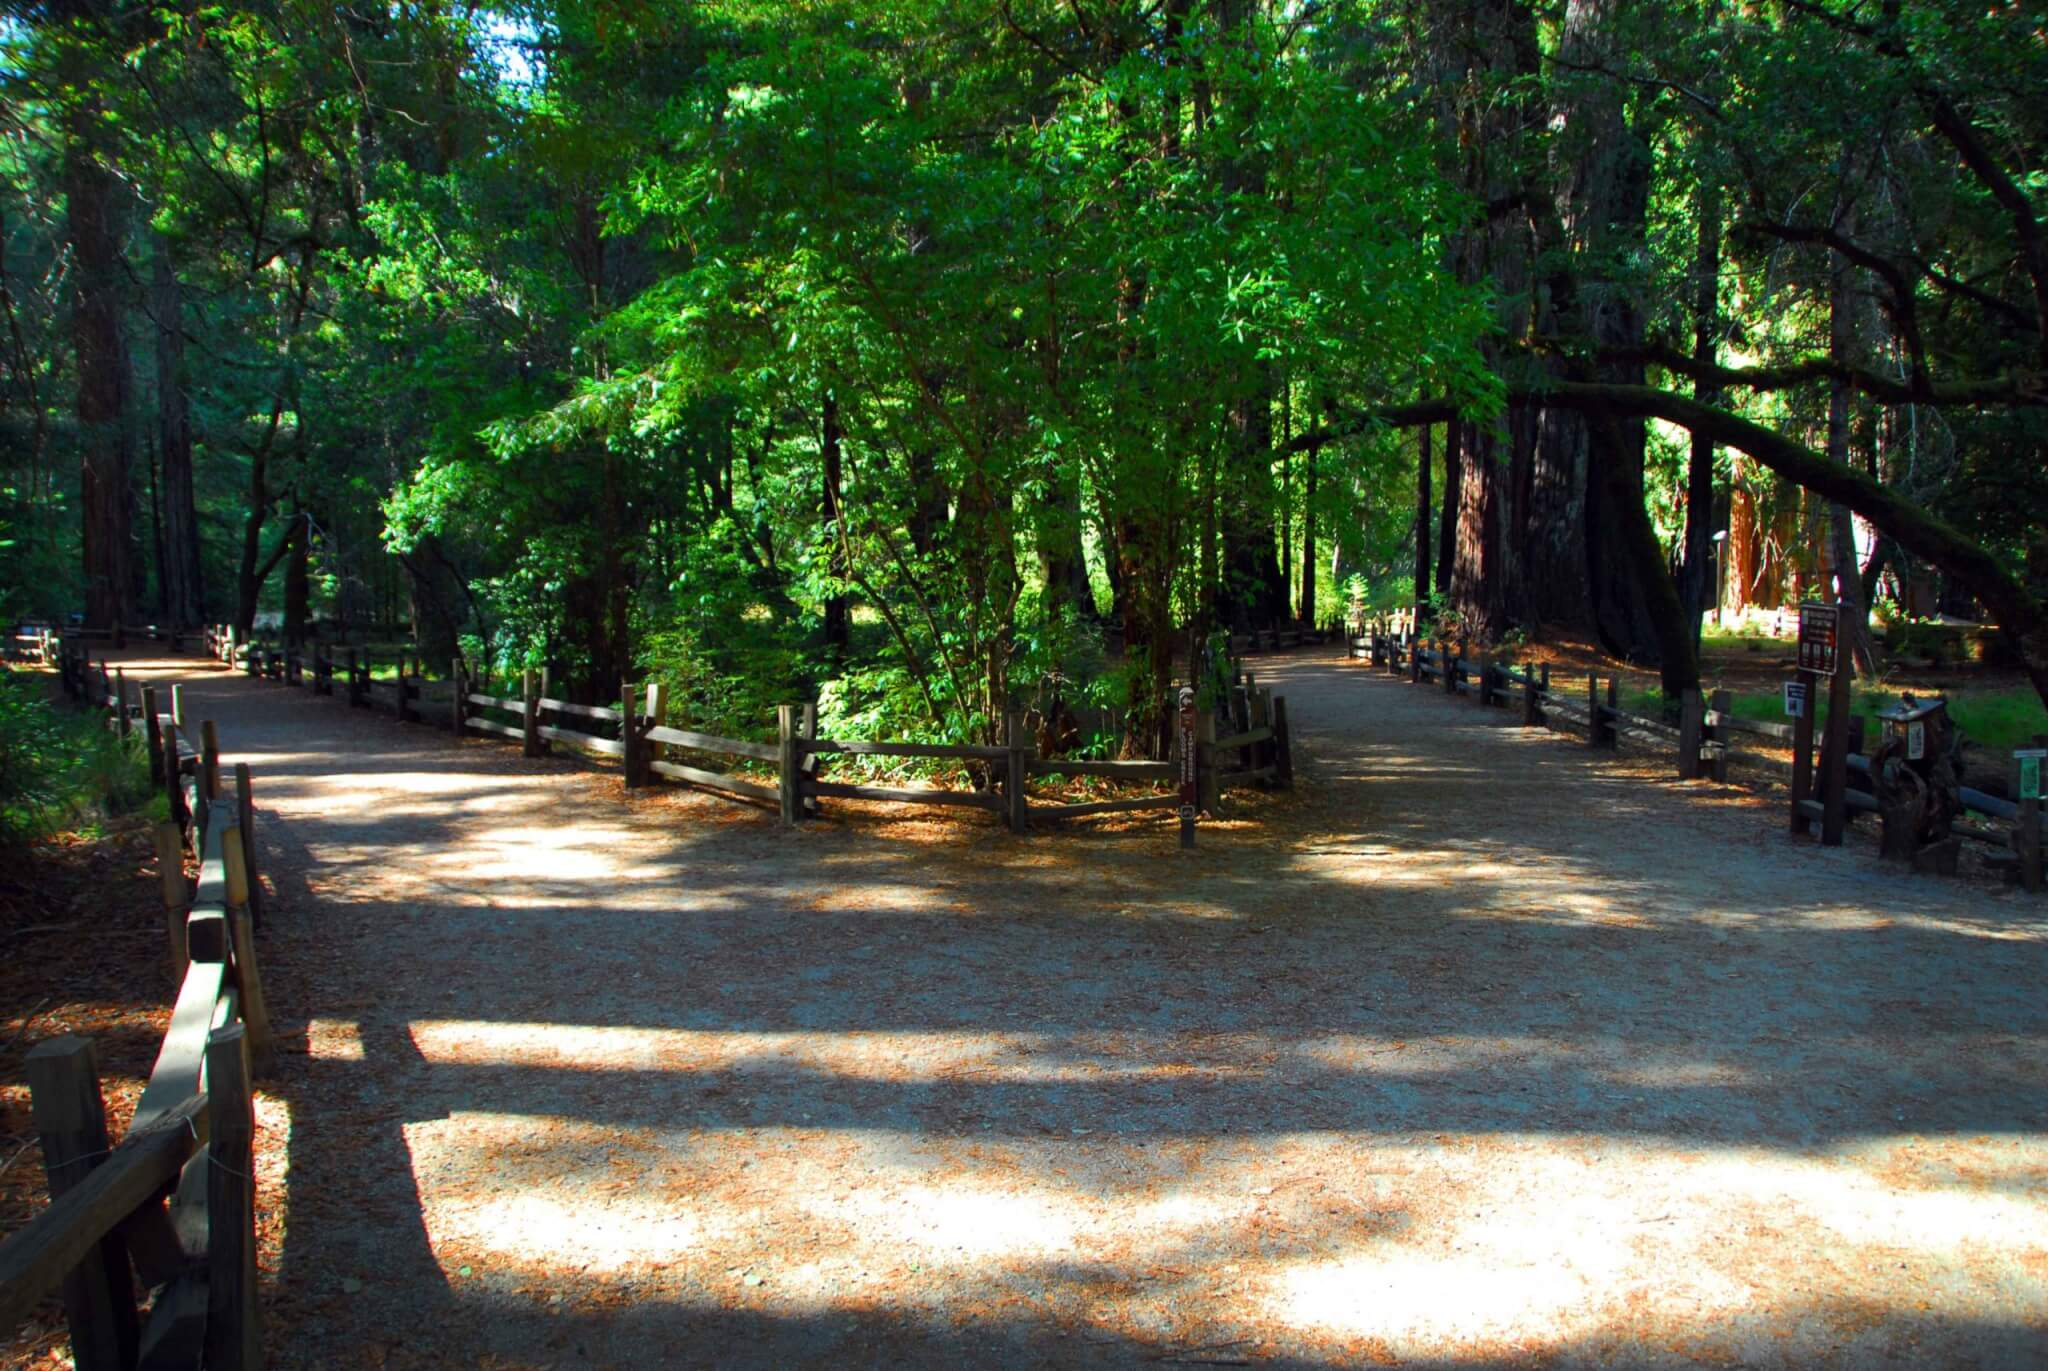 California Opens Campgrounds in 28 State Parks - Big Basin Redwoods State Park